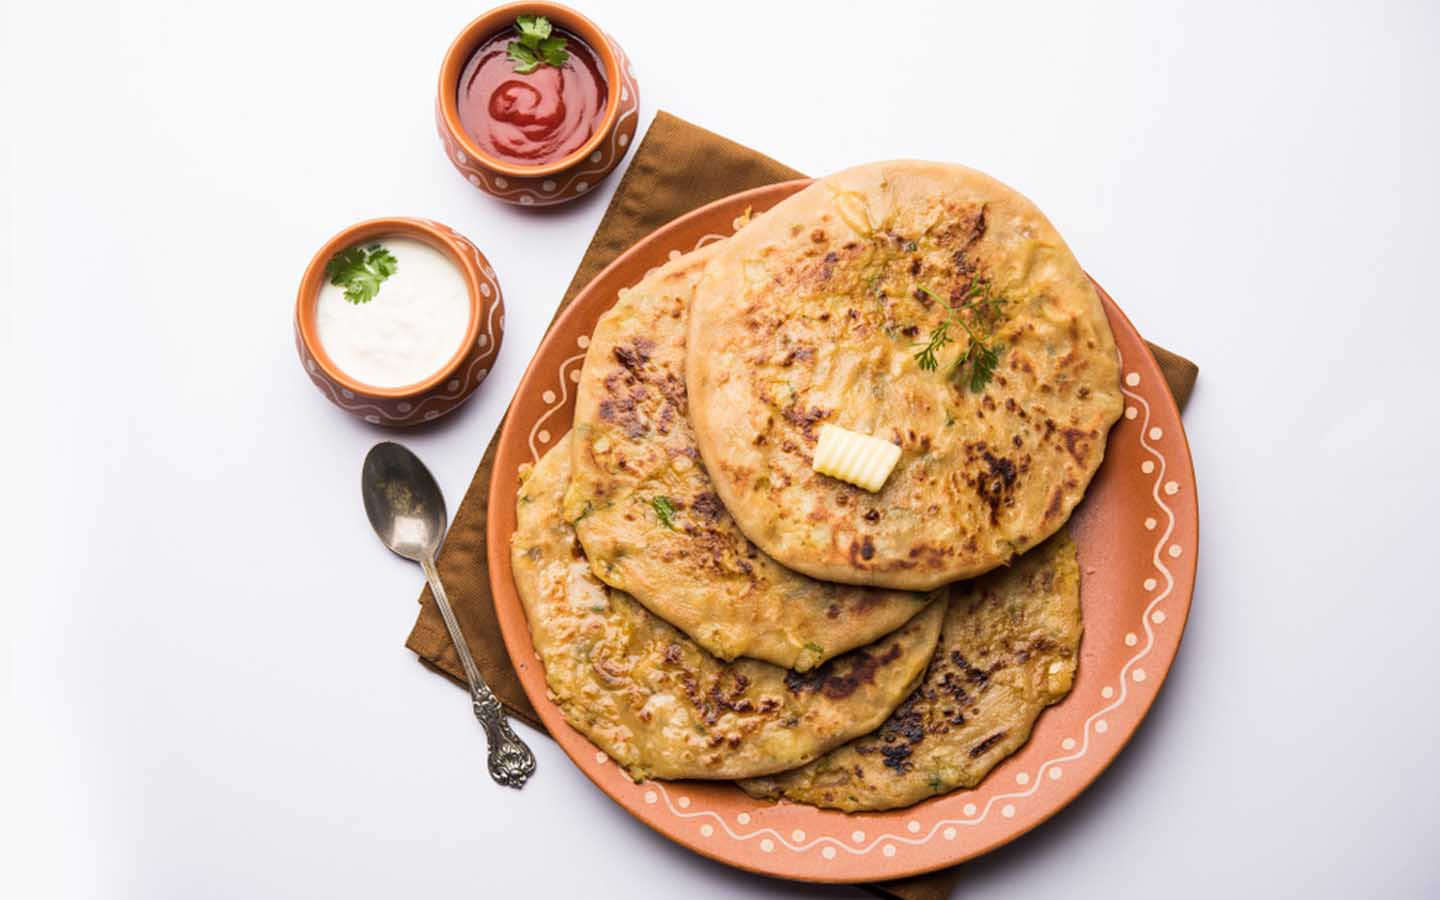 Cauliflower paratha served with dips and cheese